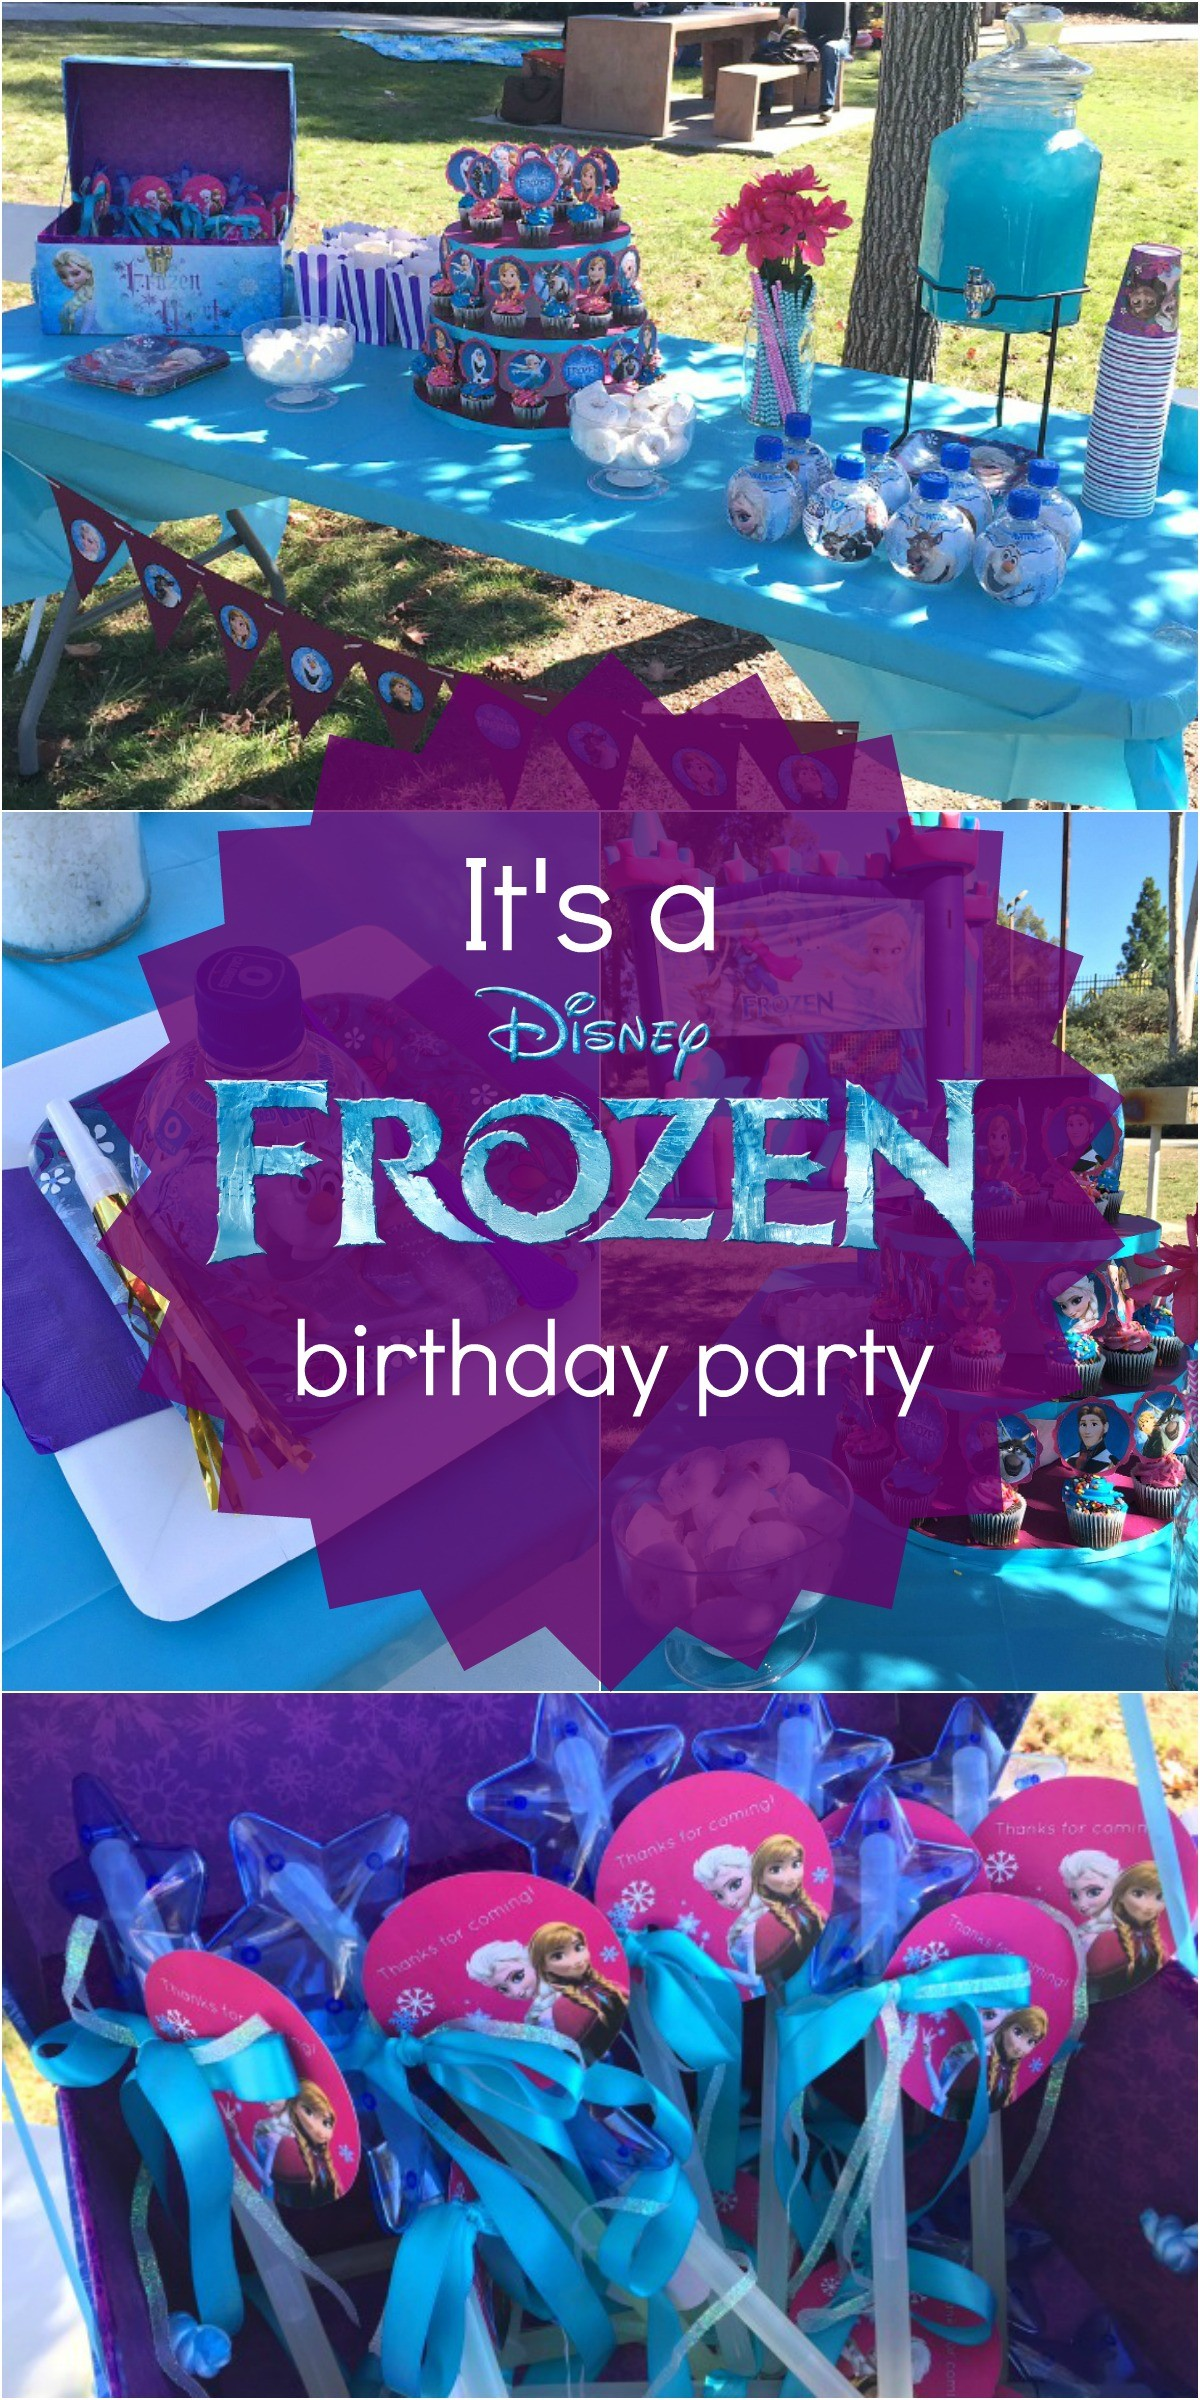 Frozen Birthday Party Ideas, Purple, Pink and Blue Decor